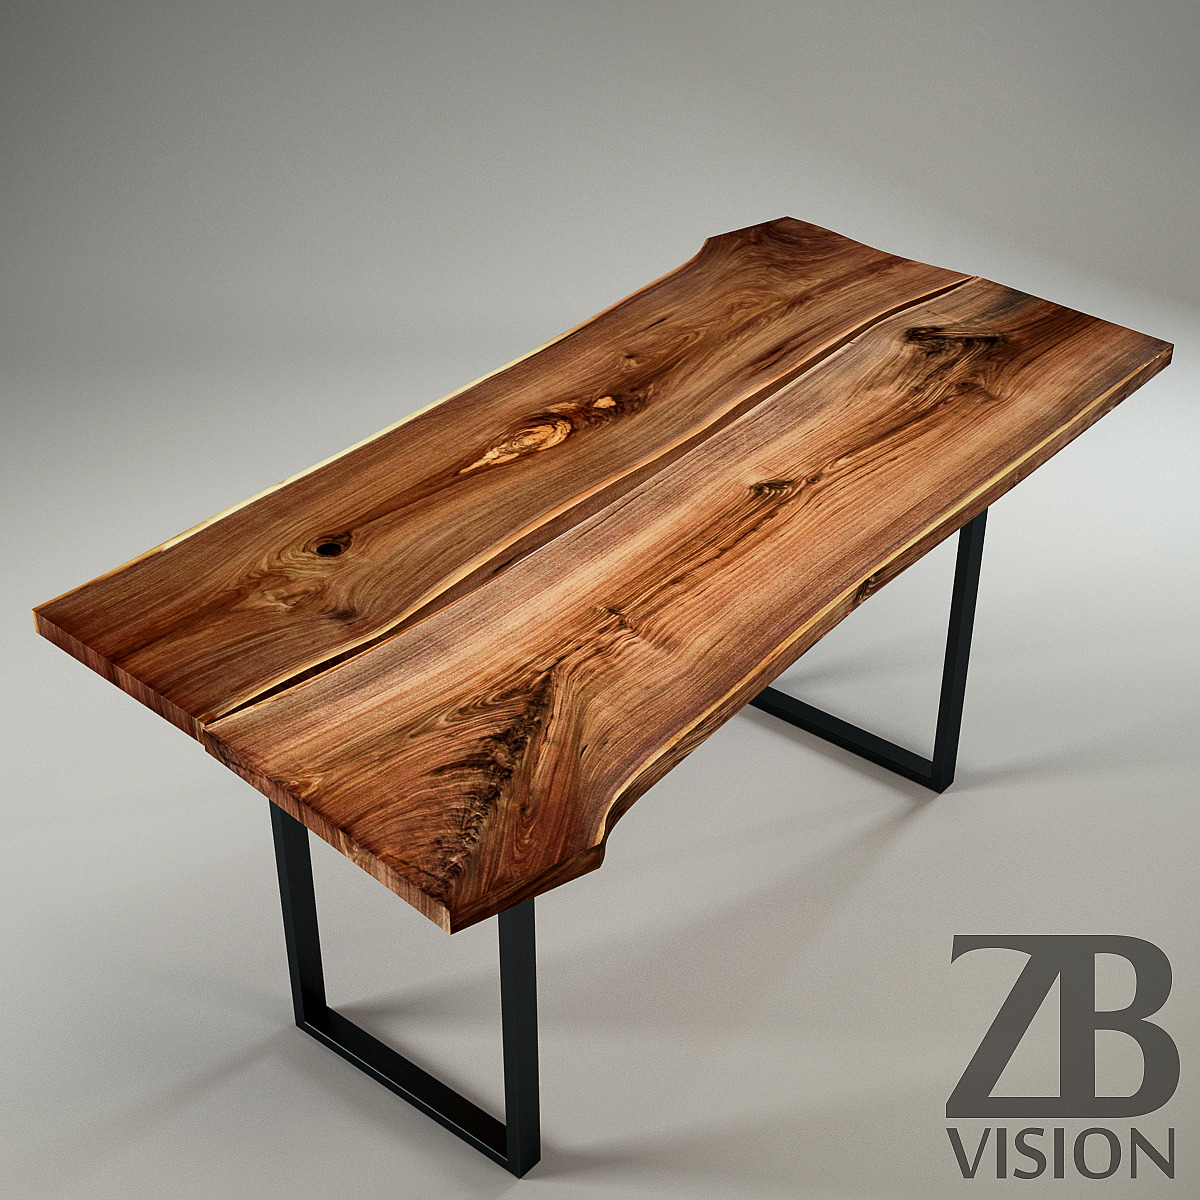 Wood Slab Table by IGN Design Switzerland by Luckyfox  : woodslabtableluckyfox1a from 3docean.net size 1200 x 1200 jpeg 461kB